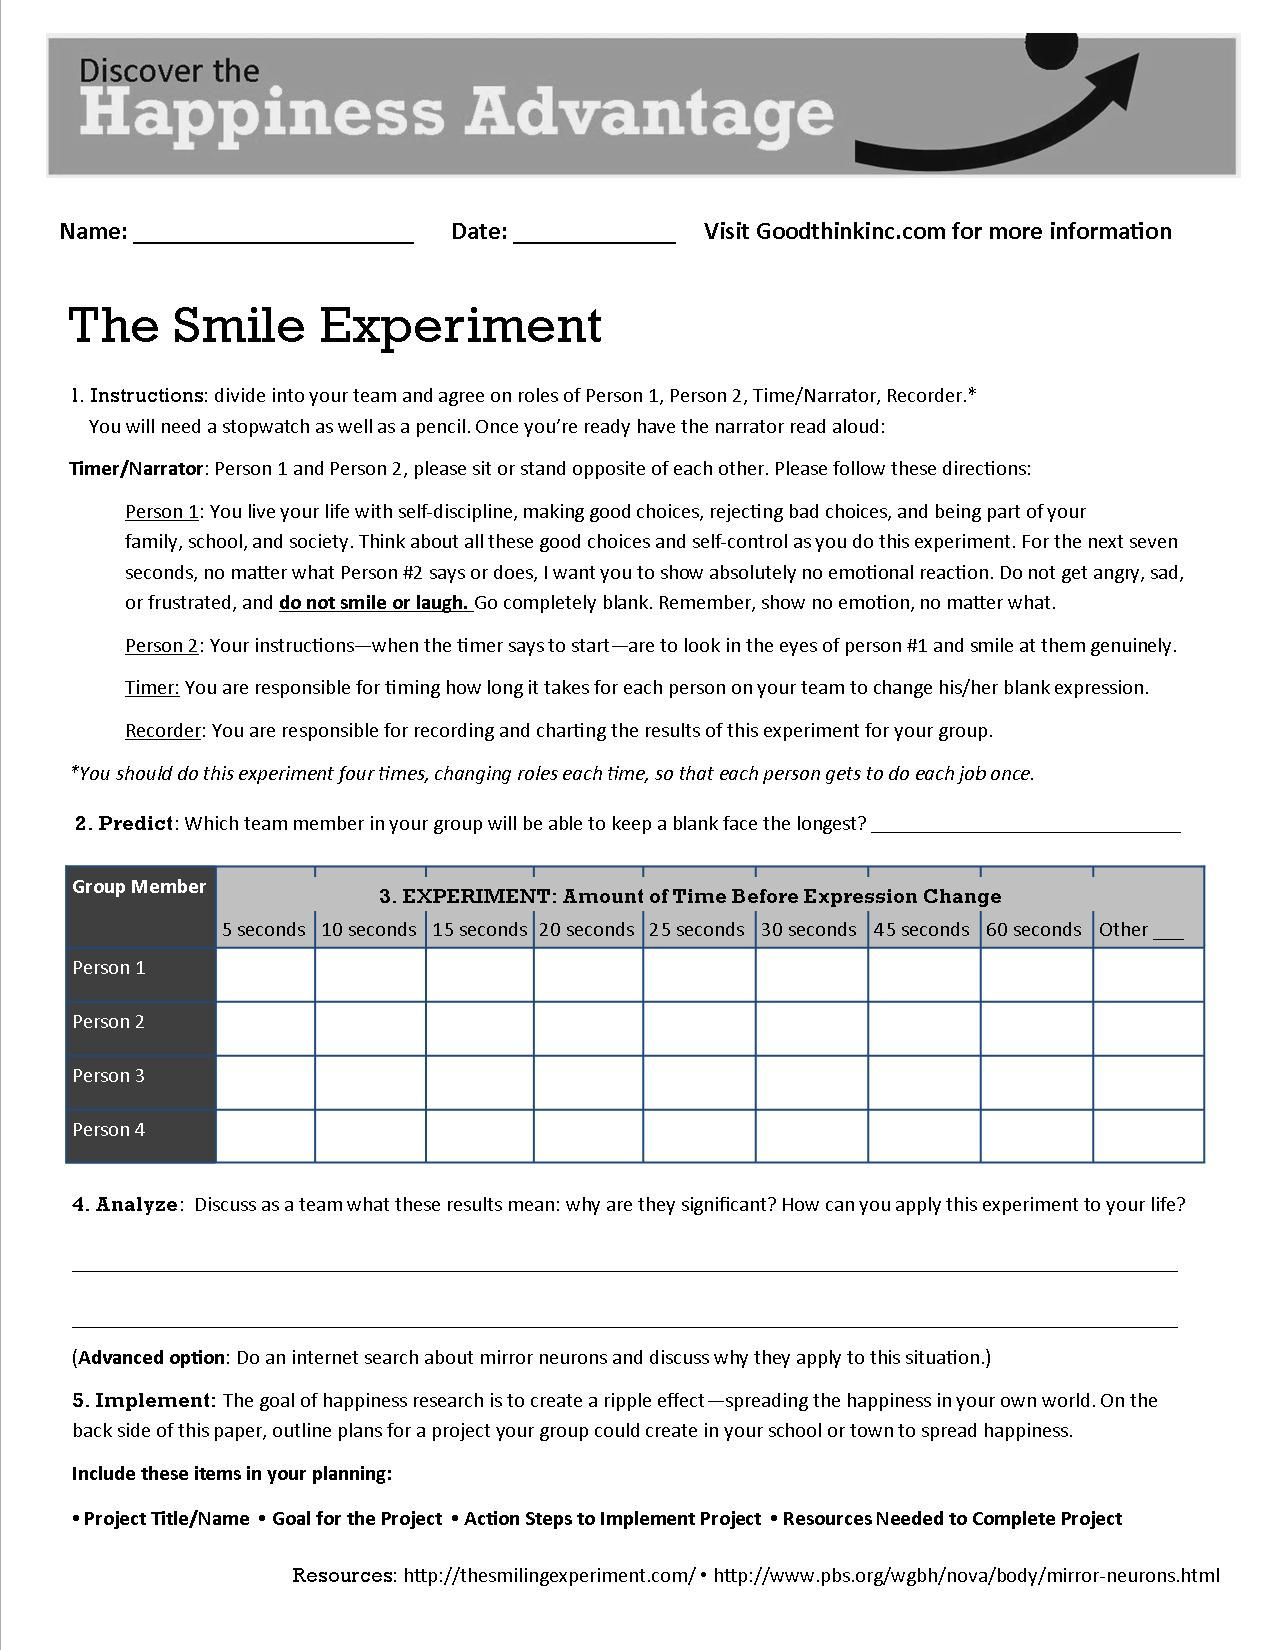 Worksheets Family Therapy Worksheets this is goodthinks smile experiment worksheet that turns our test into a classroom or